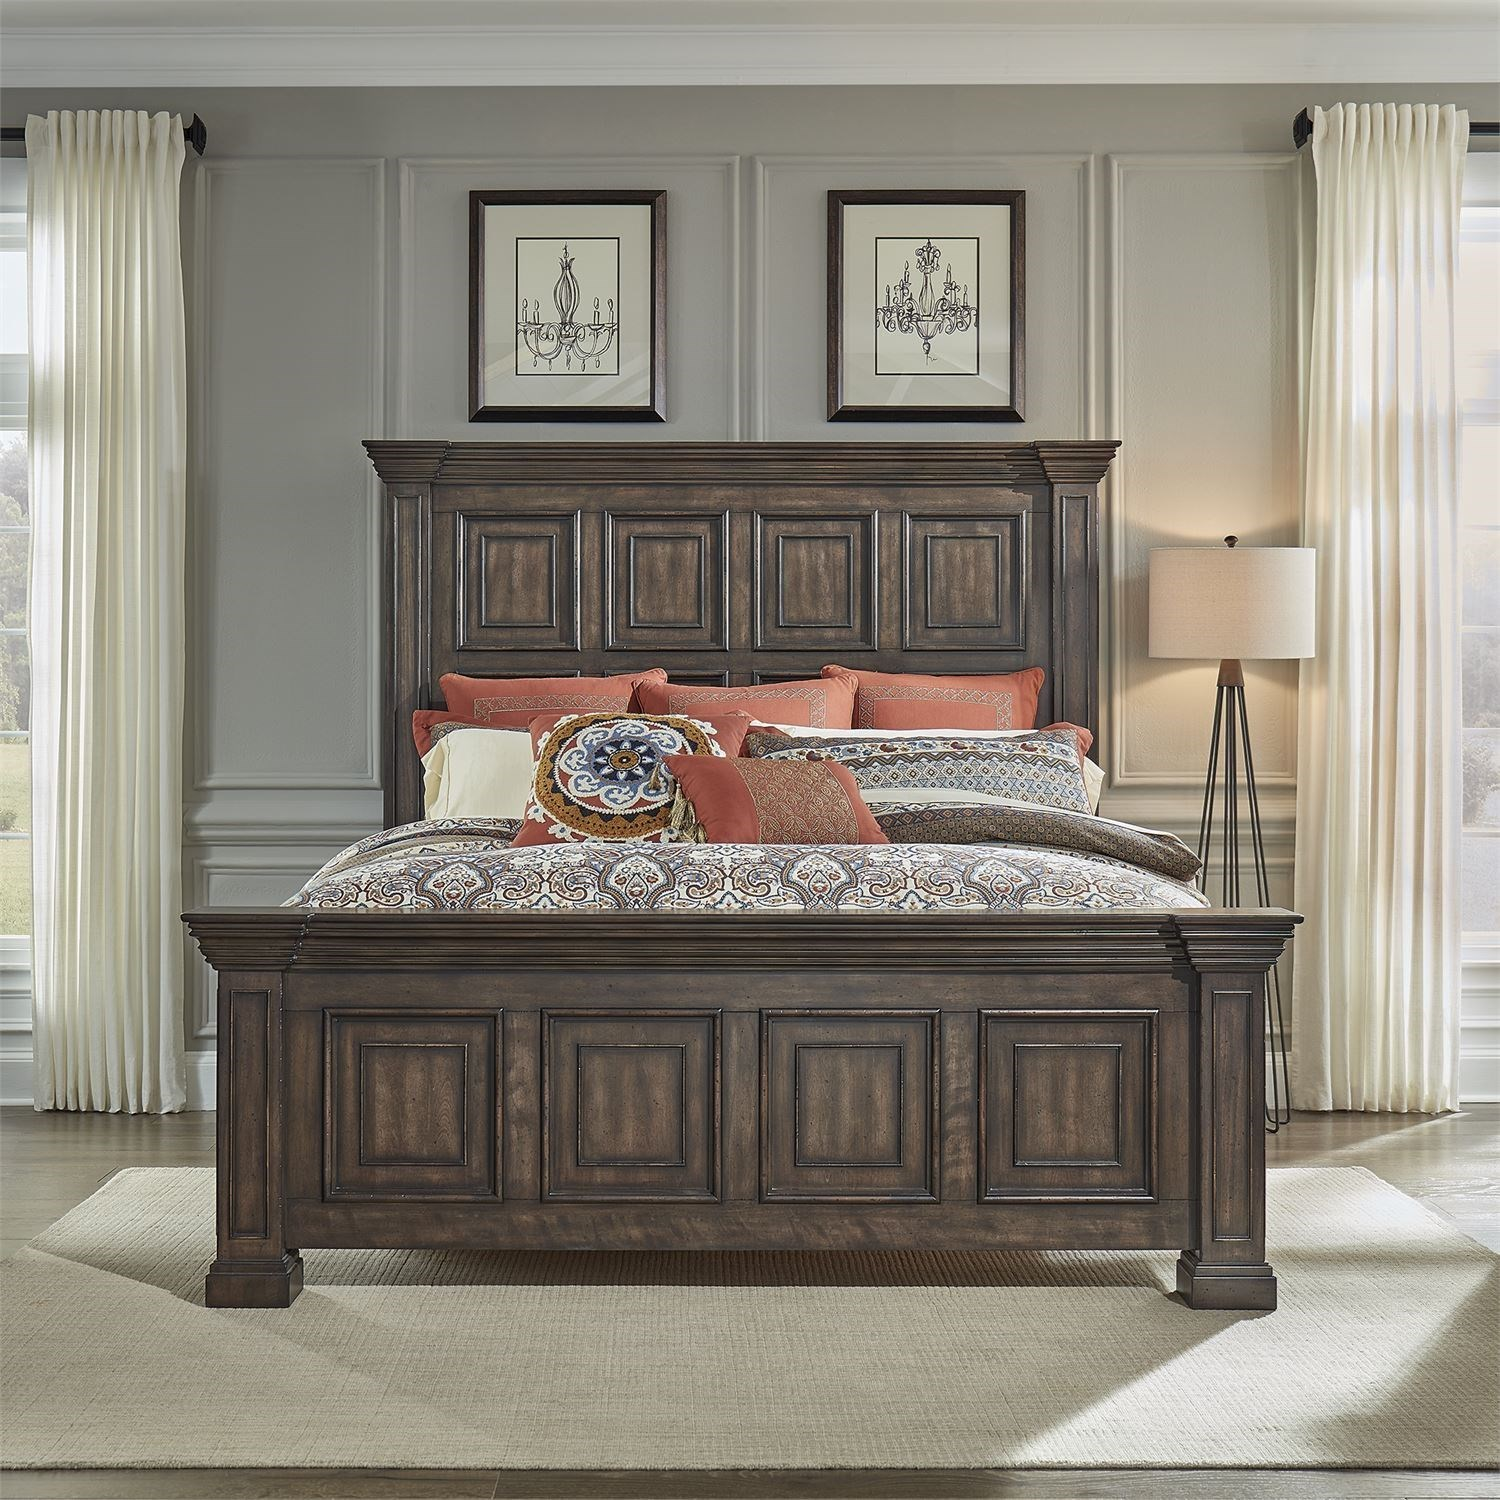 Big Valley King Panel Bed by Libby at Walker's Furniture